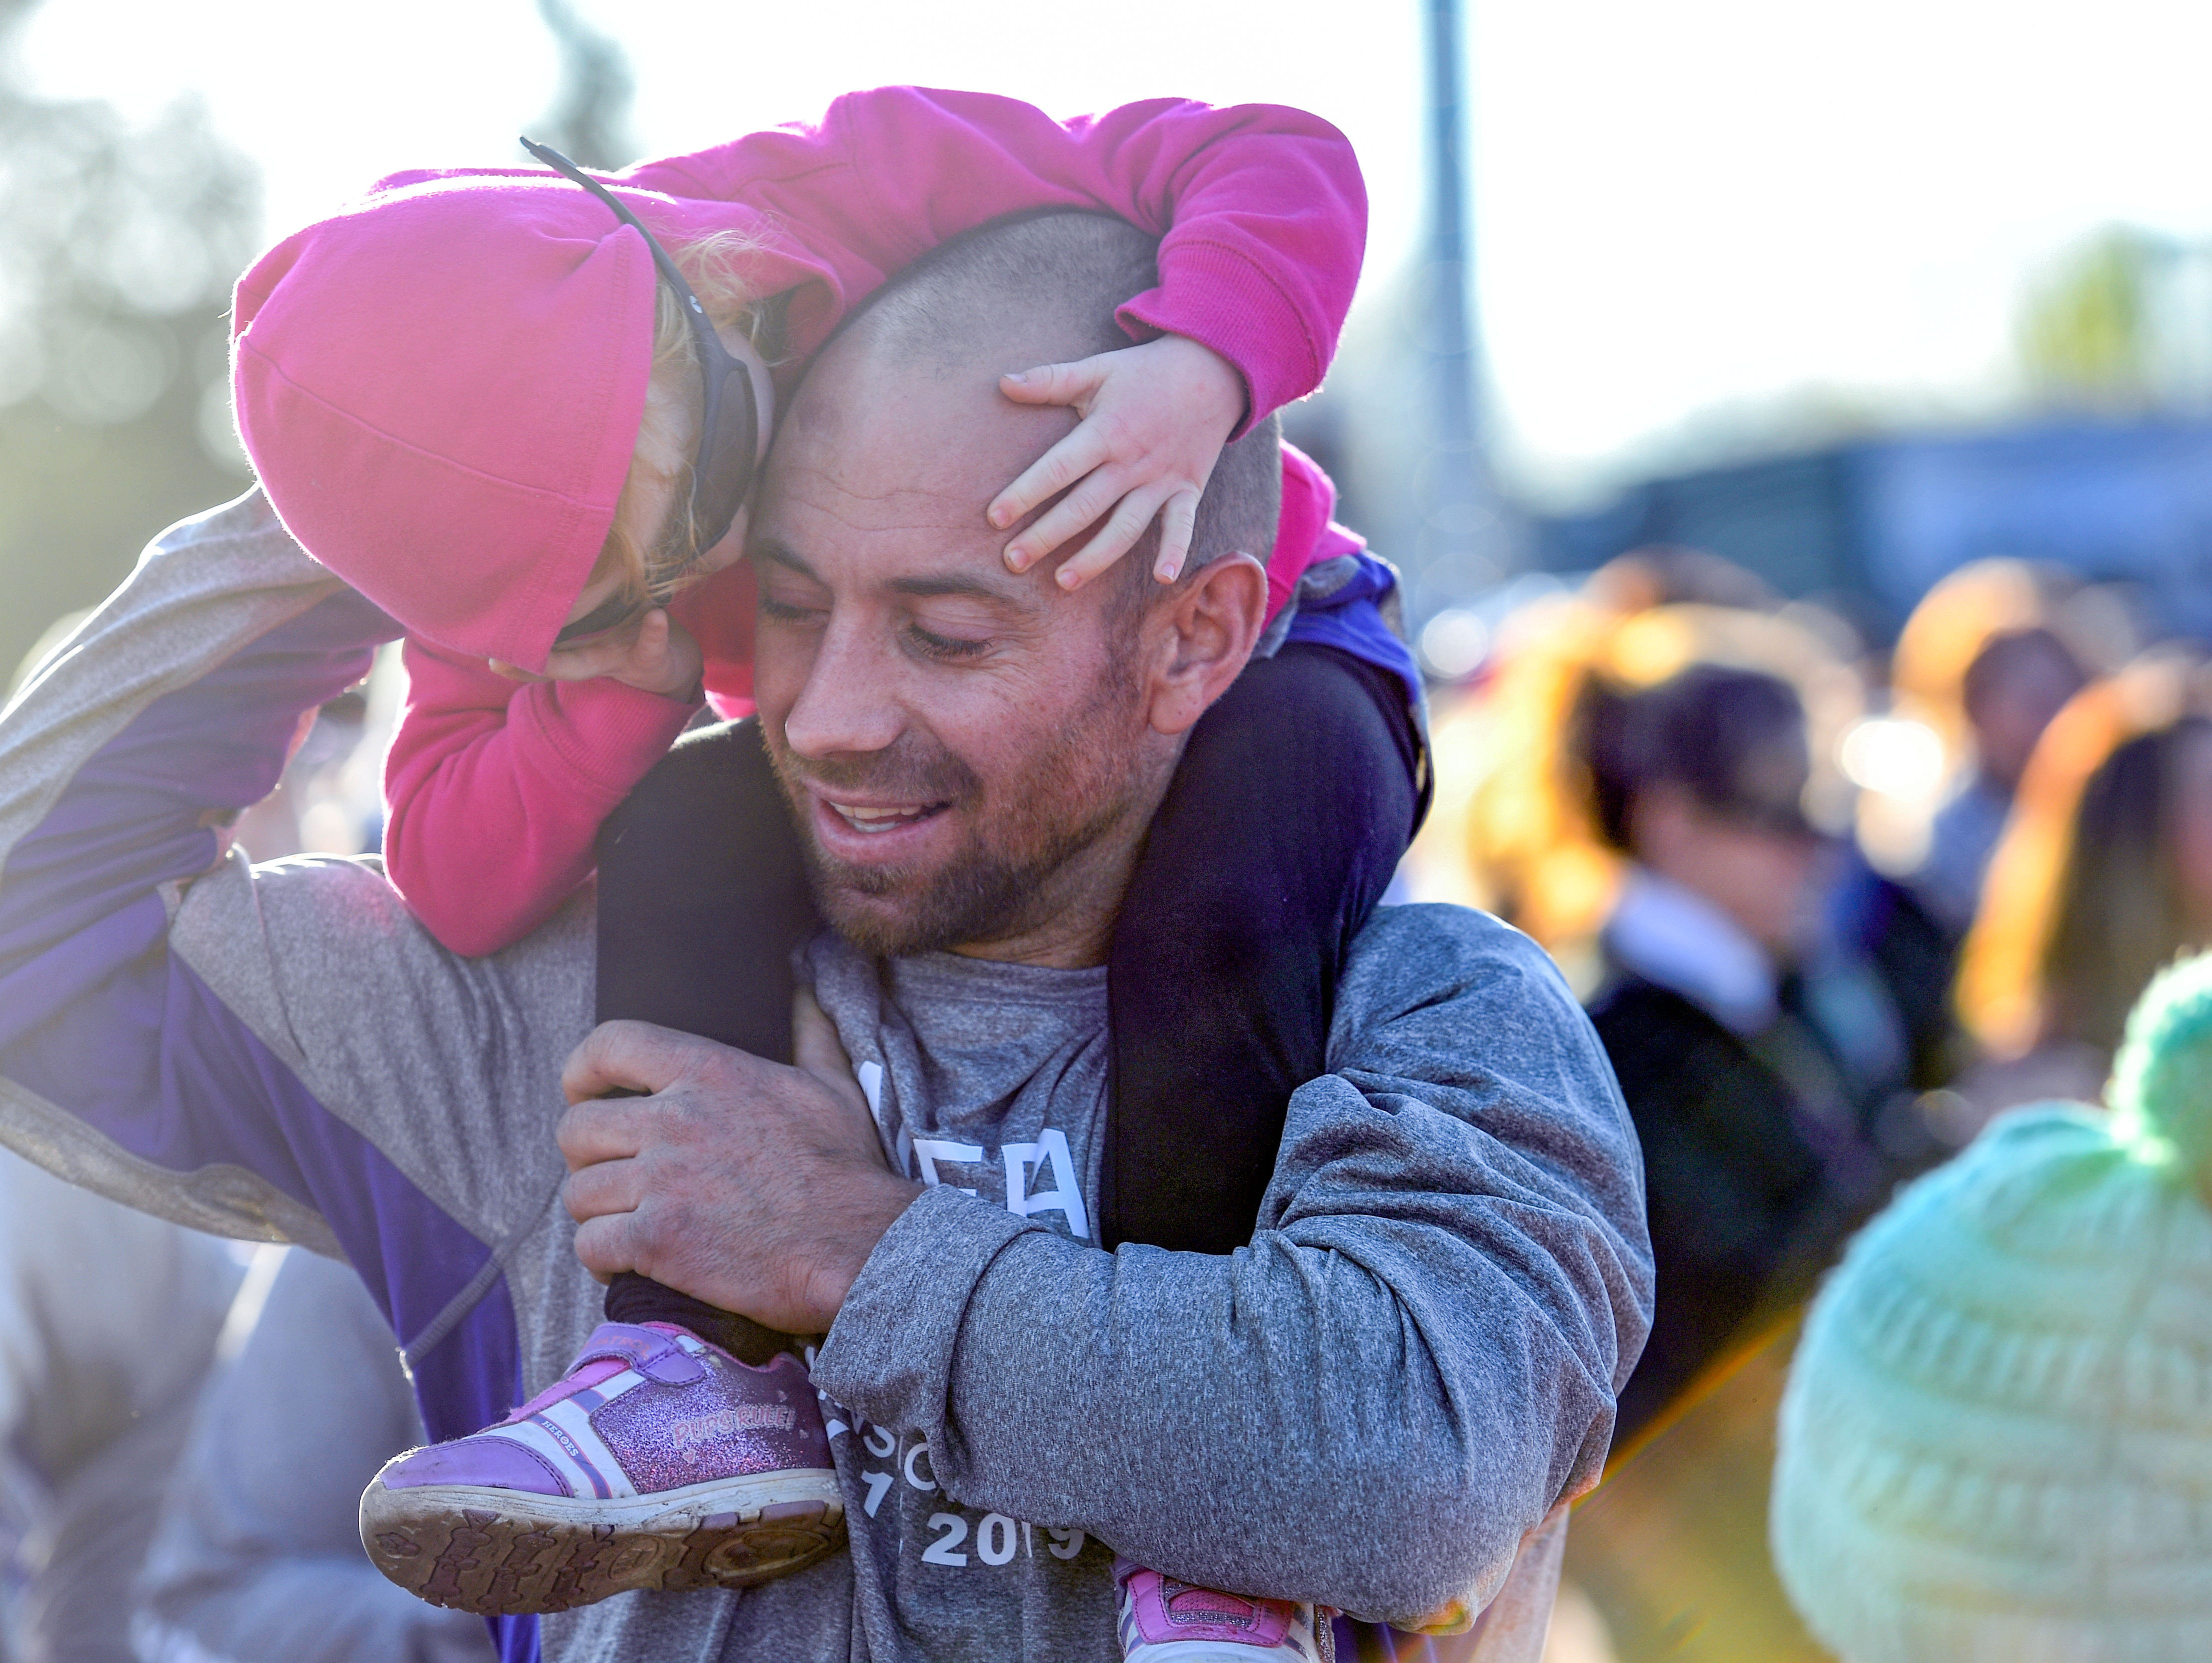 Matt Glanzer shares a moment with his daughter, Matea, 3, before running in the 31st Avera Health Race Against Cancer on Saturday morning, May 11, in Sioux Falls.